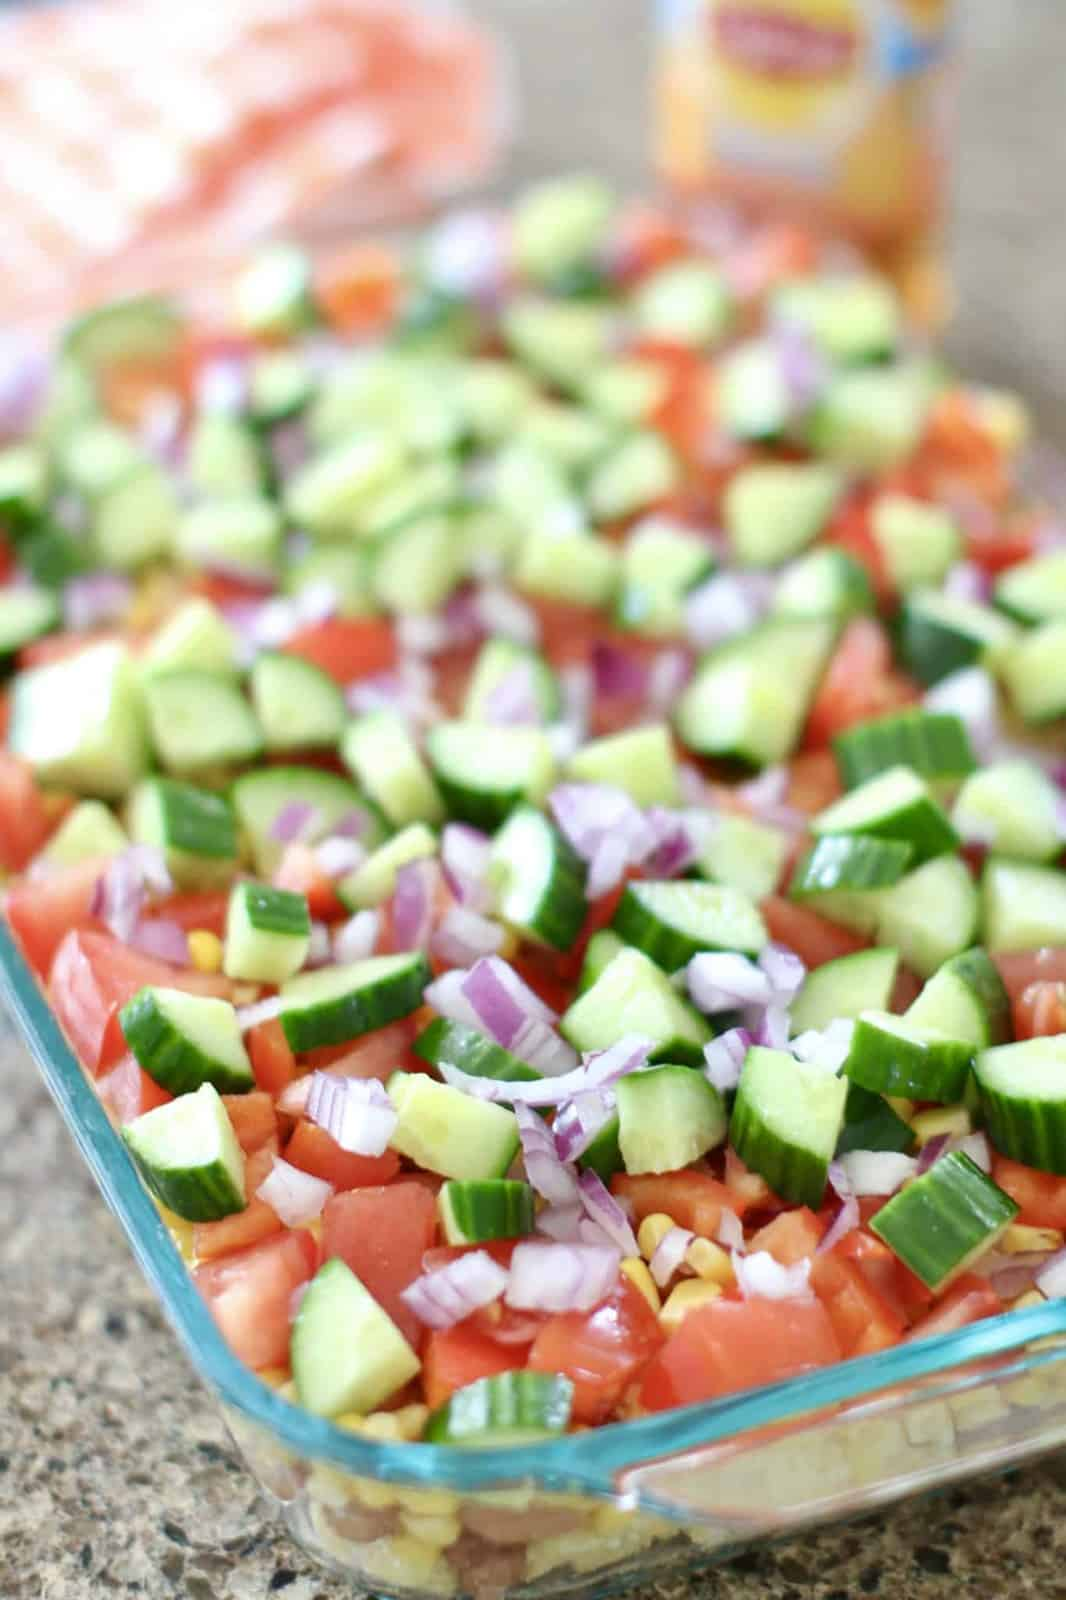 pinto beans, corn, tomatoes, onions and cucumbers layered on top of cubed cornbread in a baking dish.